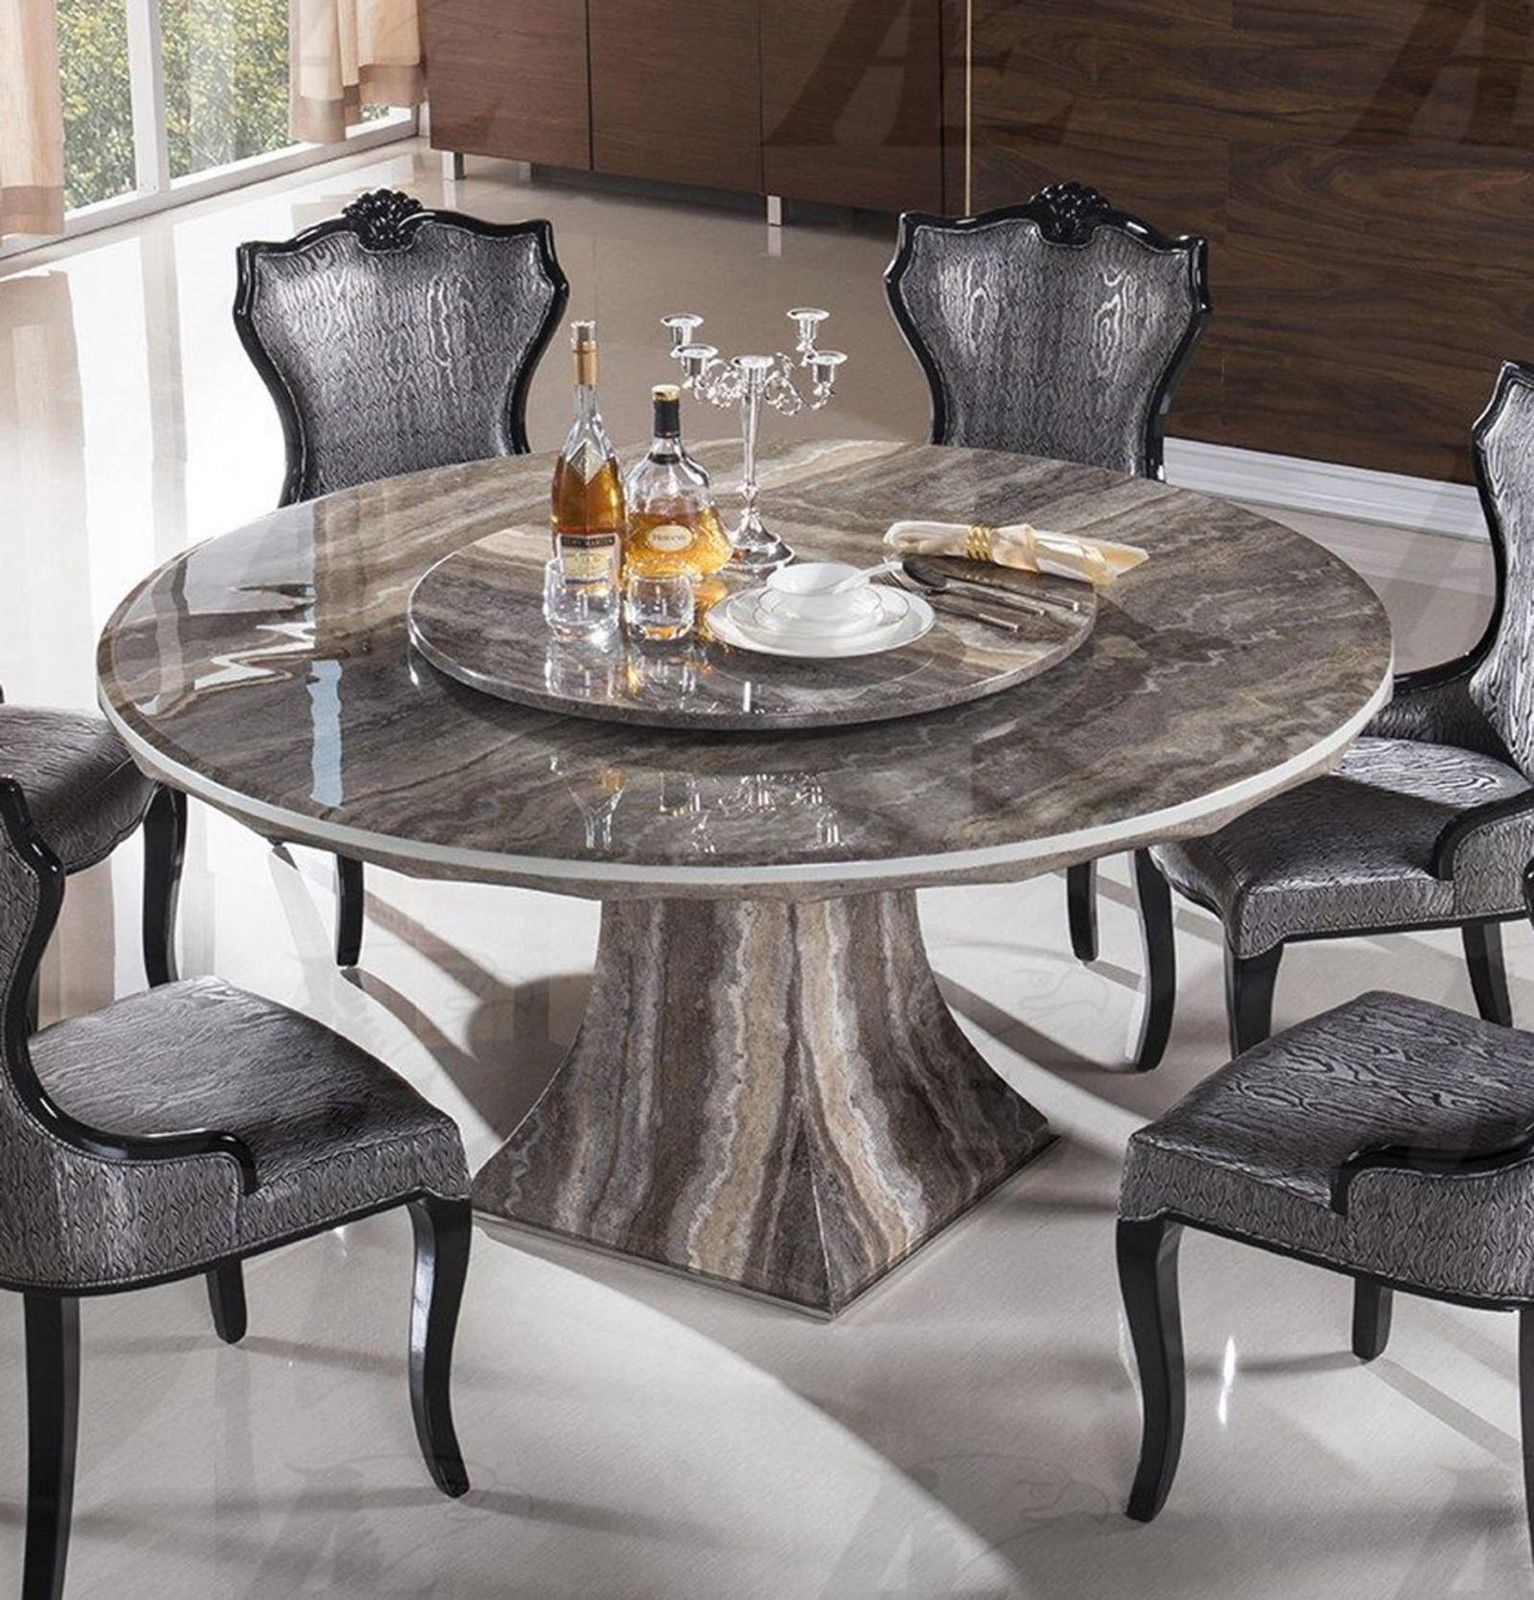 American eagle dt h36 black marble top round dining table for Black round dining table